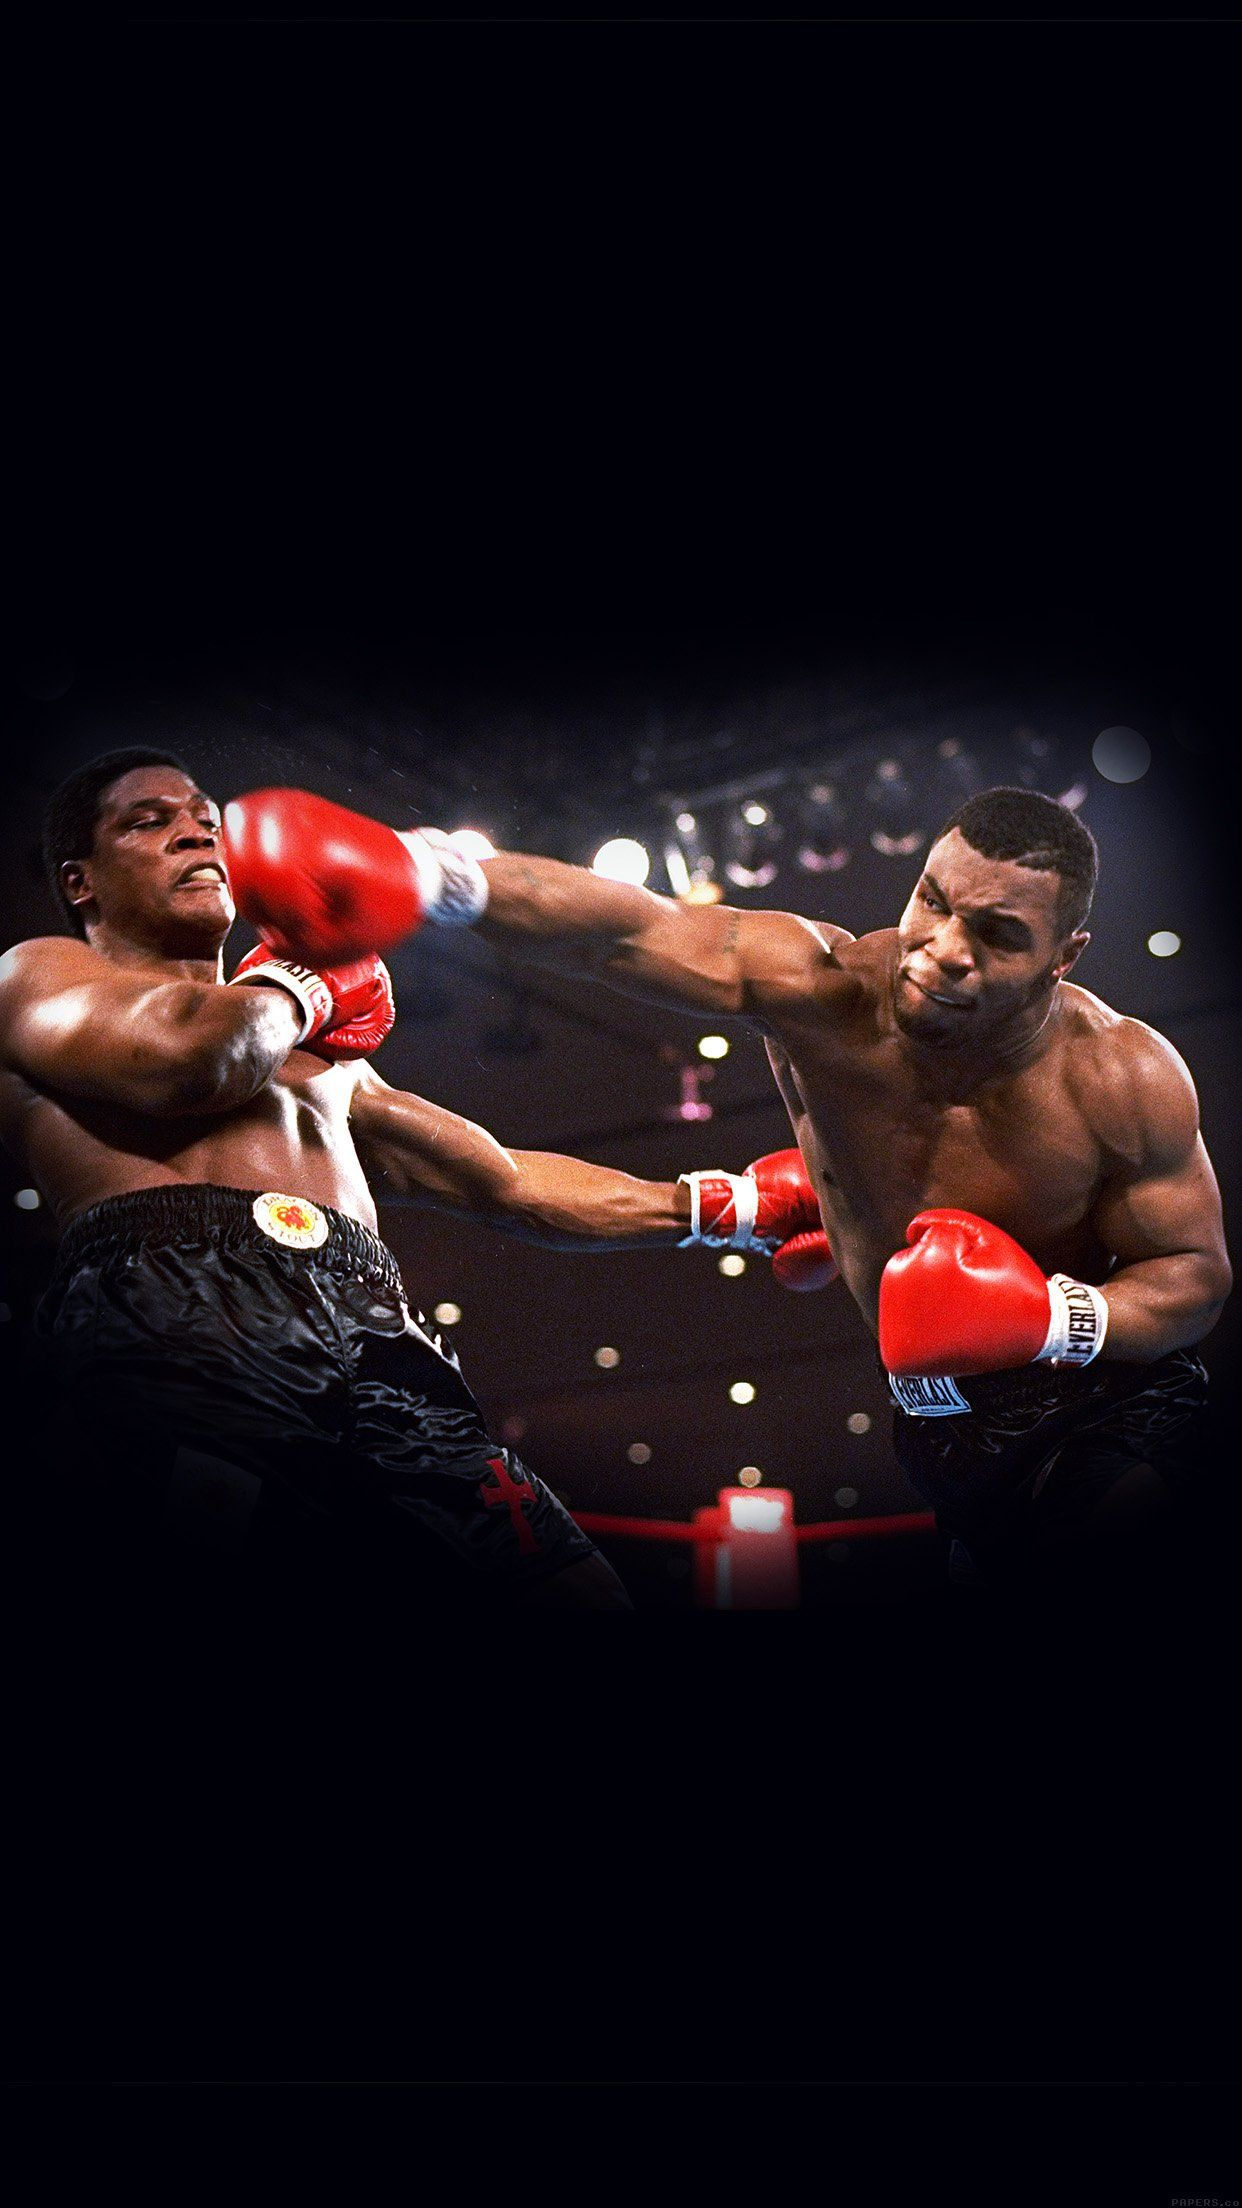 Mike Tyson Wallpaper Iphone 6s Google Search Mike Tyson Mike Tyson Mysteries Mike Tyson Boxing